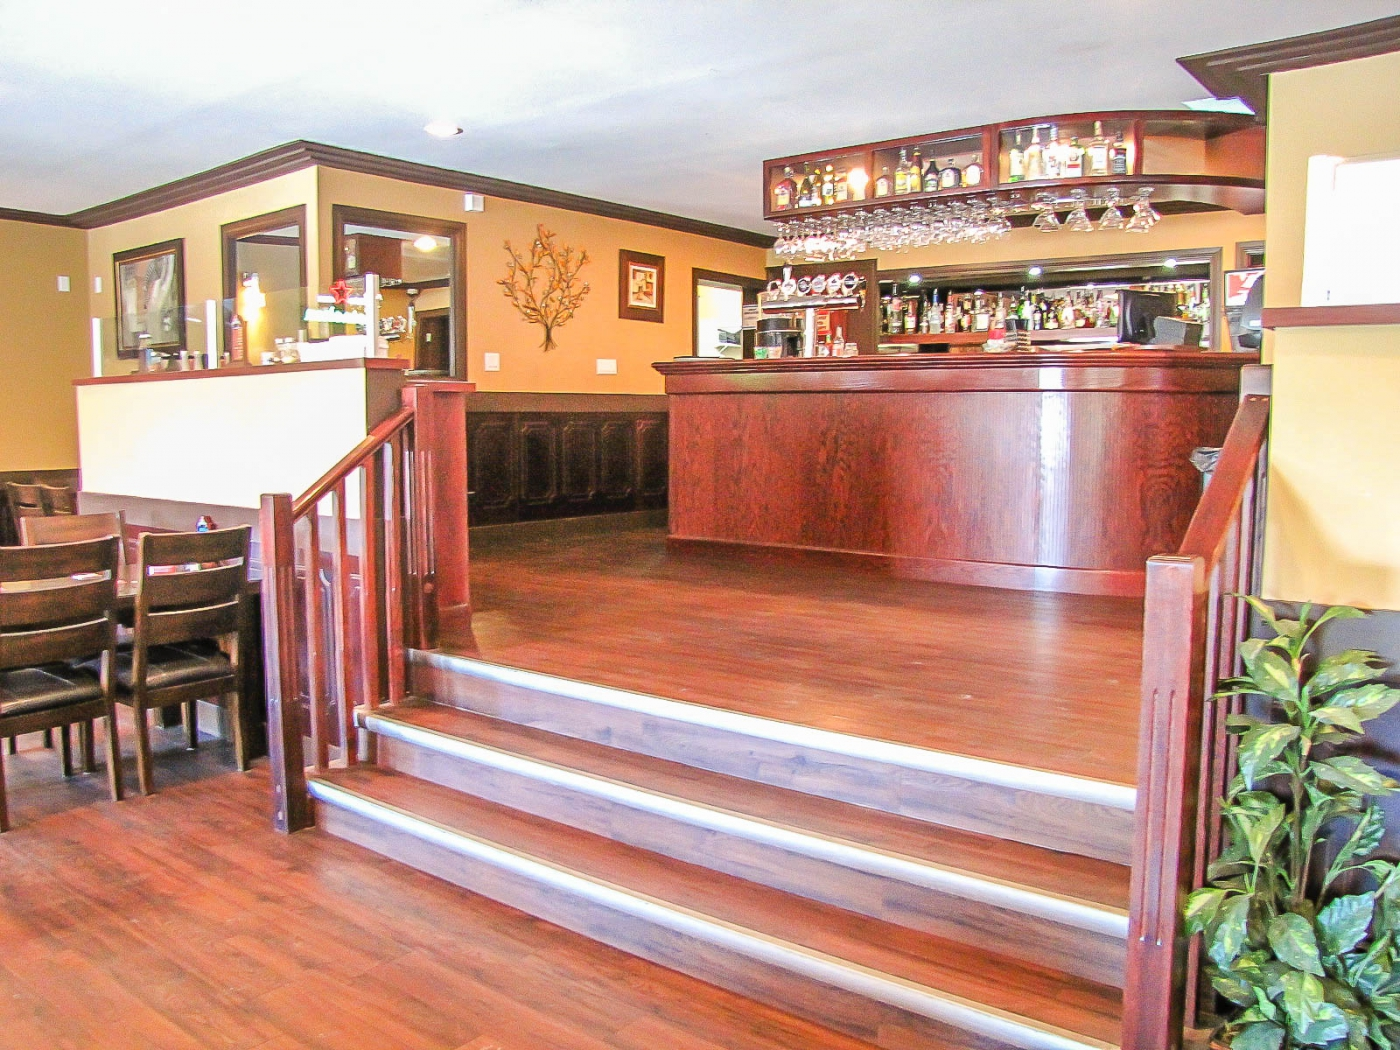 22 SUITE MOTEL AND PUB is a business for sale in BC.